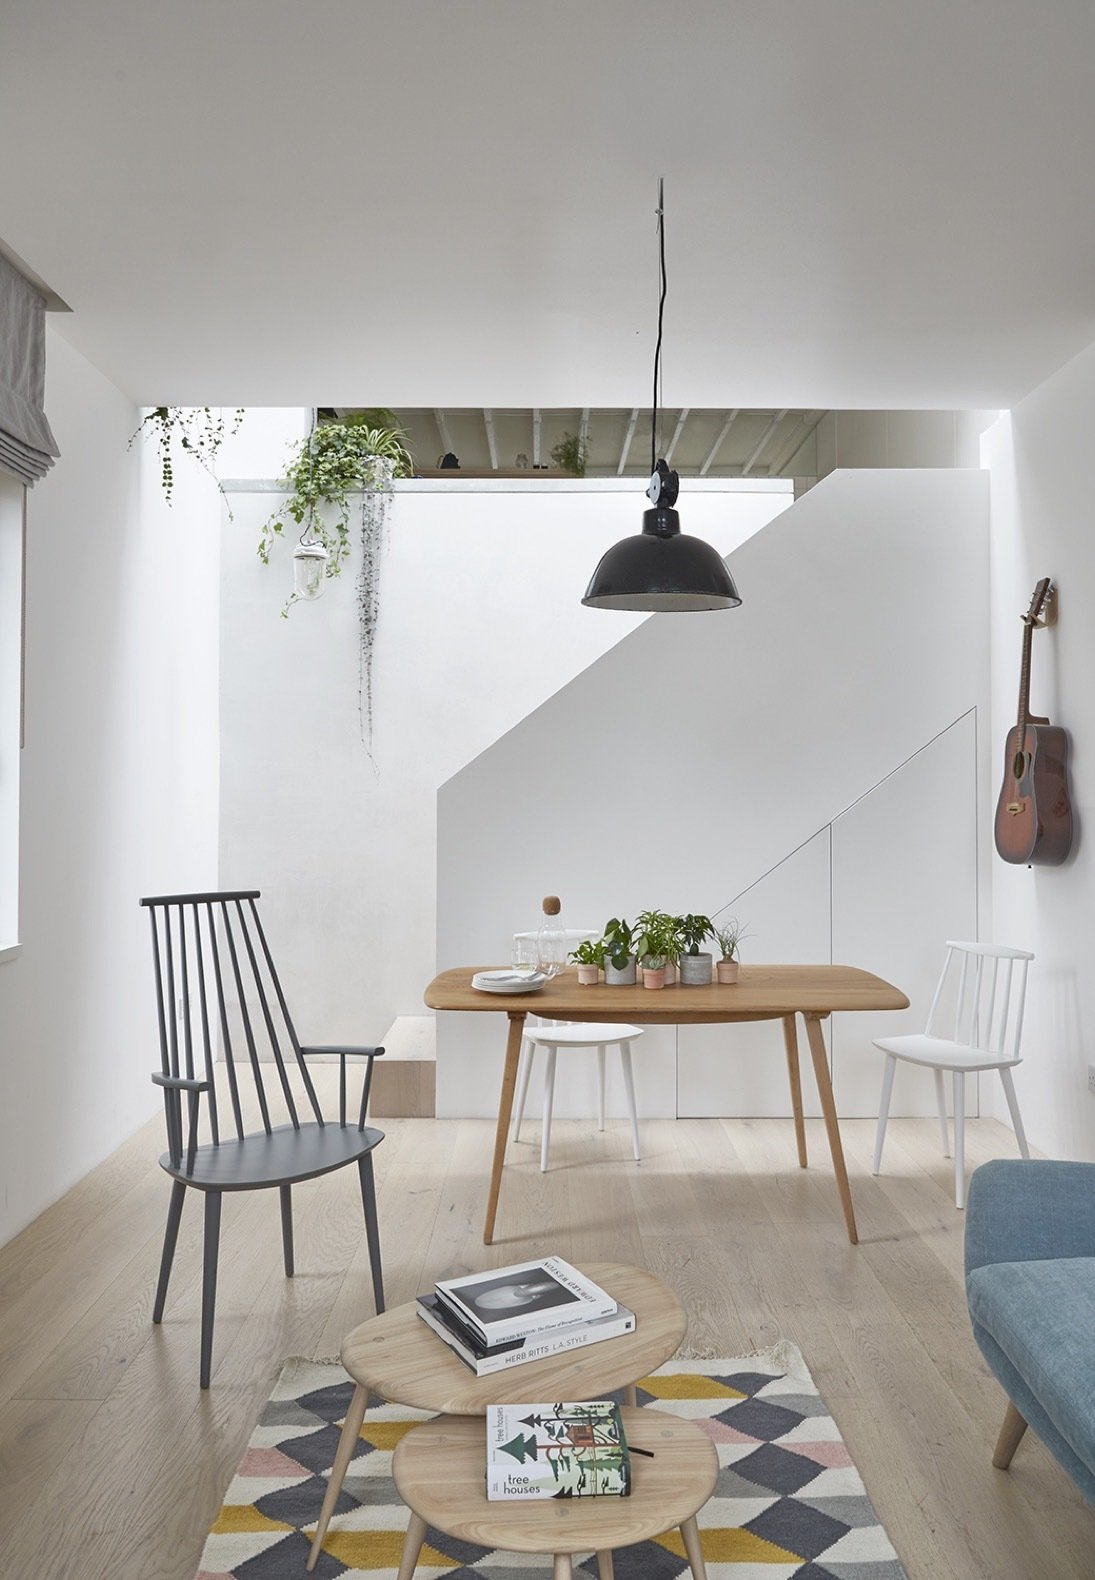 Living Room, Chair, Pendant Lighting, Table, Coffee Tables, Sofa, Light Hardwood Floor, and Rug Floor The dining and coffee tables are from Ercol. The chairs are from HAY.    Photo 3 of 13 in A Claustrophobic London Mews House Gets a Smart Redesign